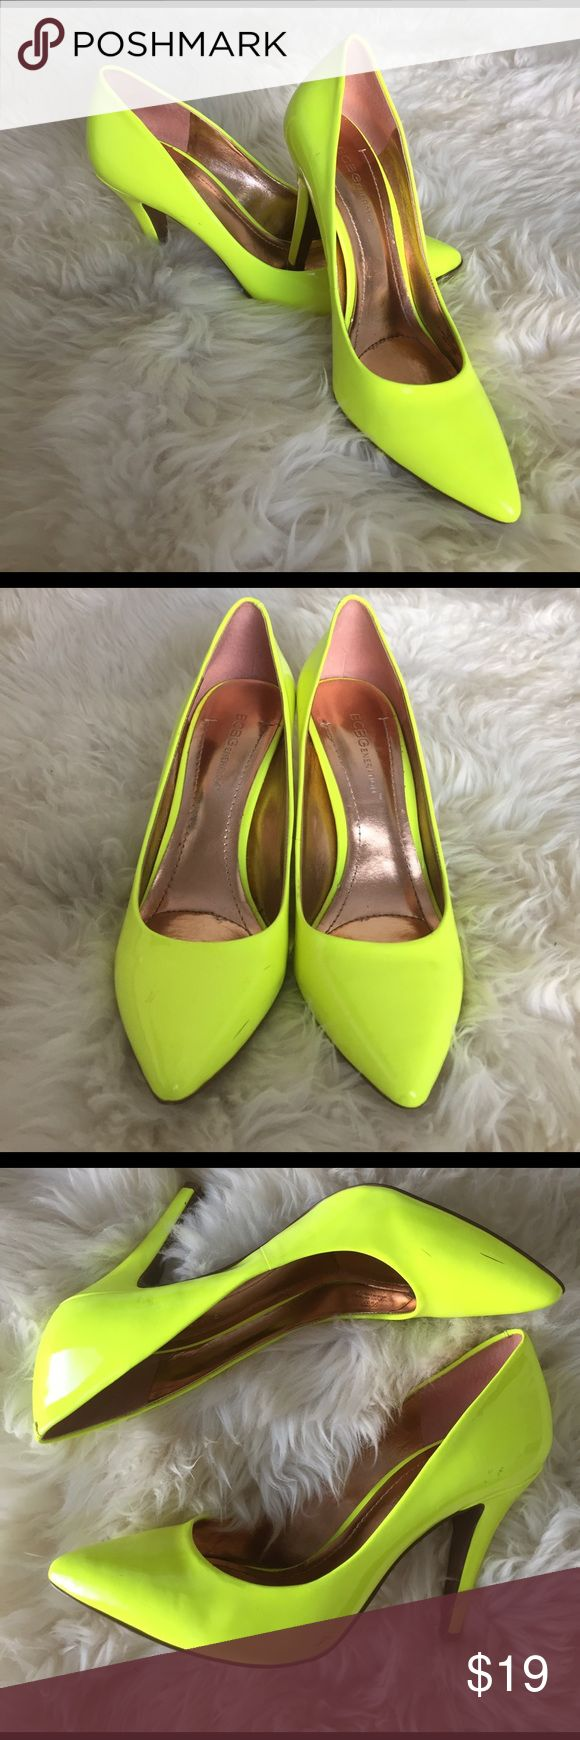 """BCBG GENERATION Neon Yellow Patent Leather Pumps Showstoppers!! Neon yellow pumps will be the hottest thing this summer! 3.5"""" heel. BCBGeneration Shoes Heels"""